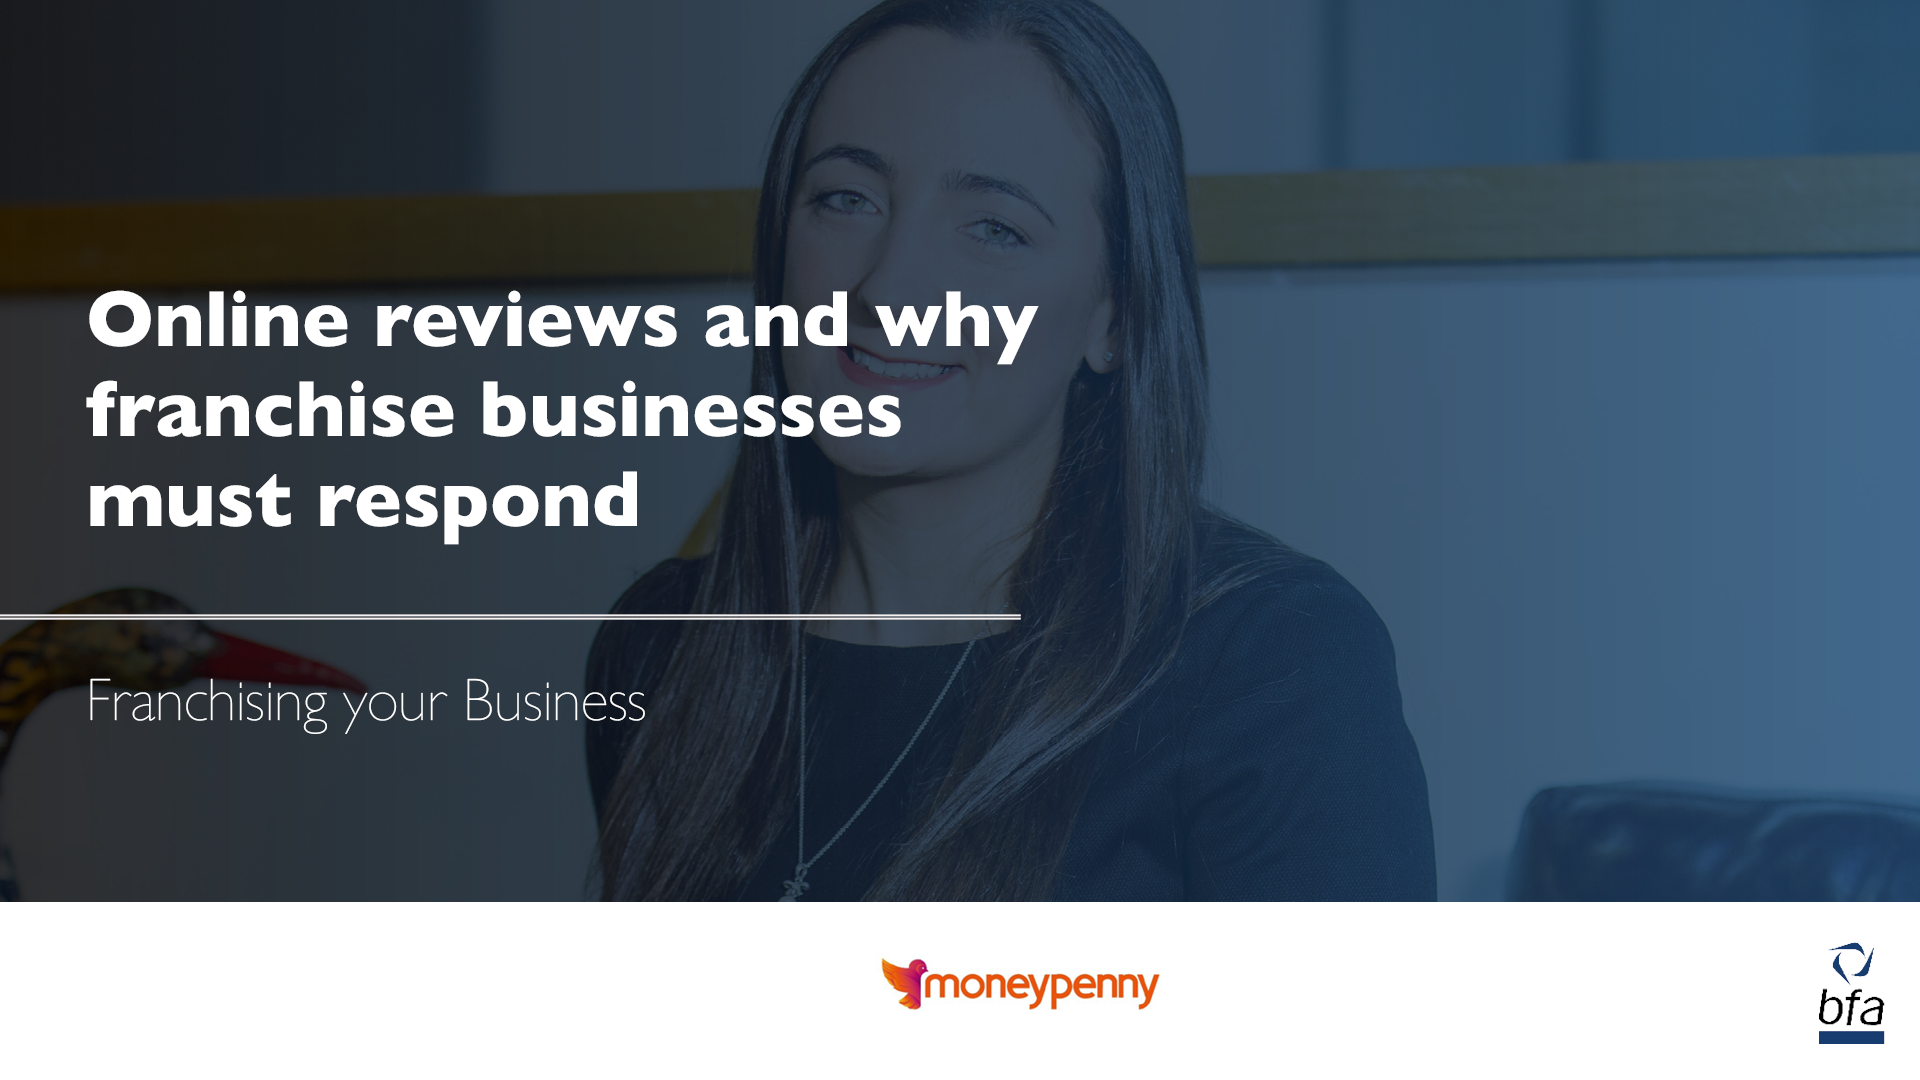 Online reviews and why franchise businesses must respond